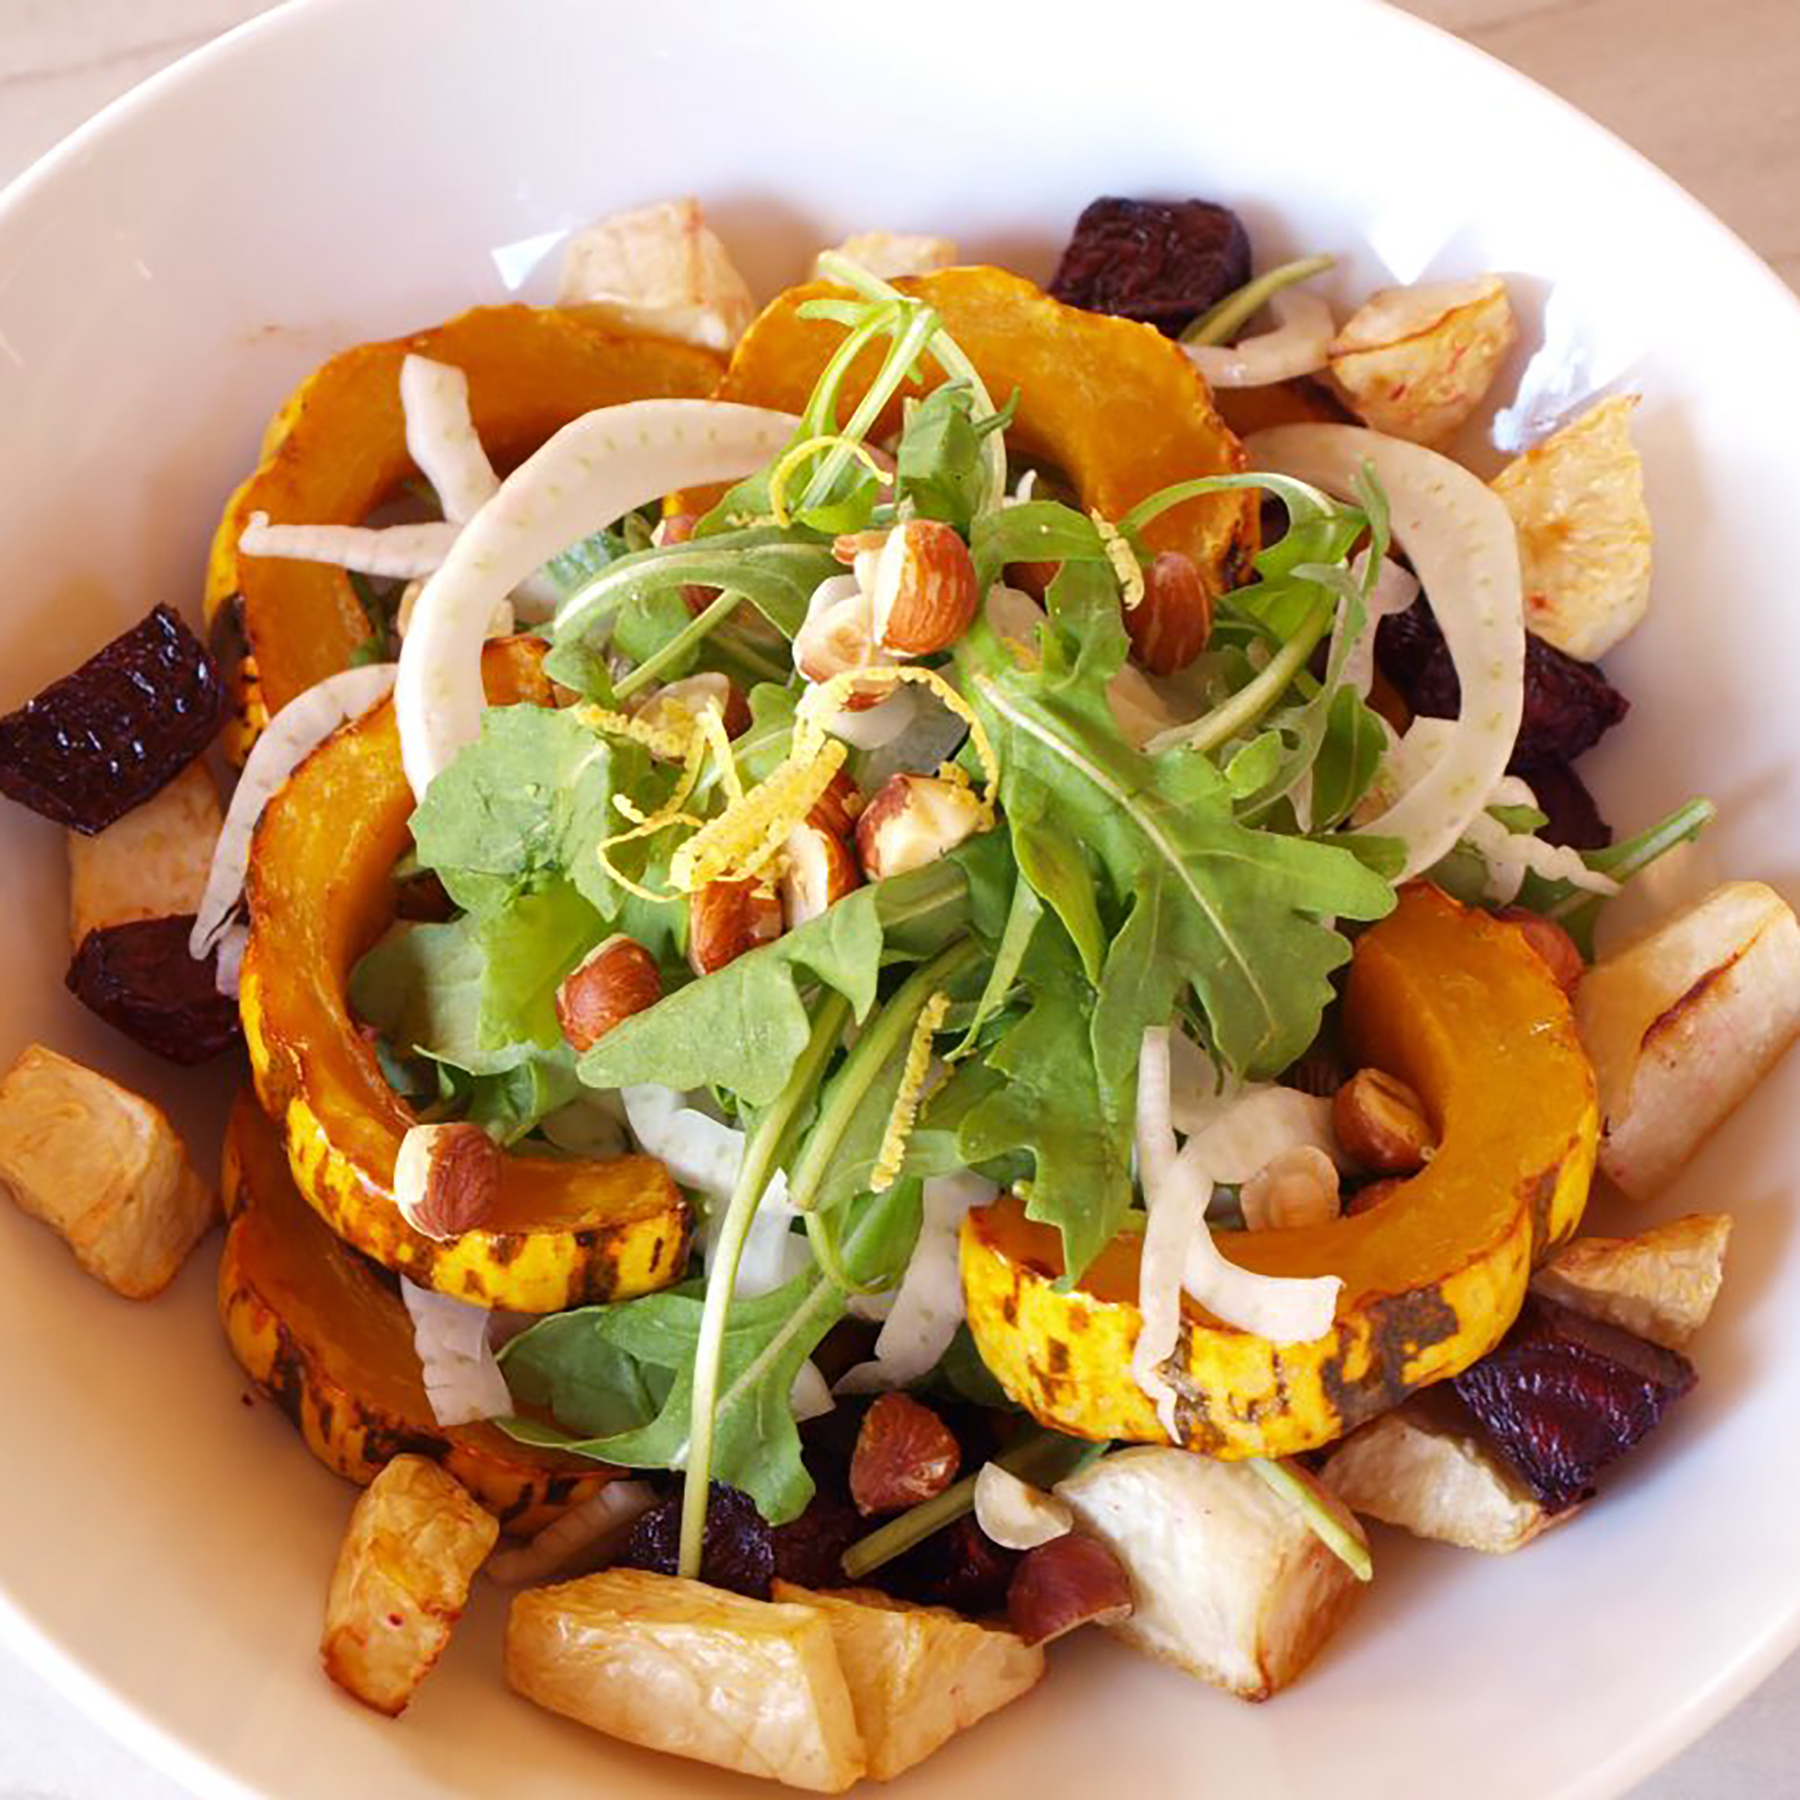 Roasted Vegetable Salad with Delicata and Arugula